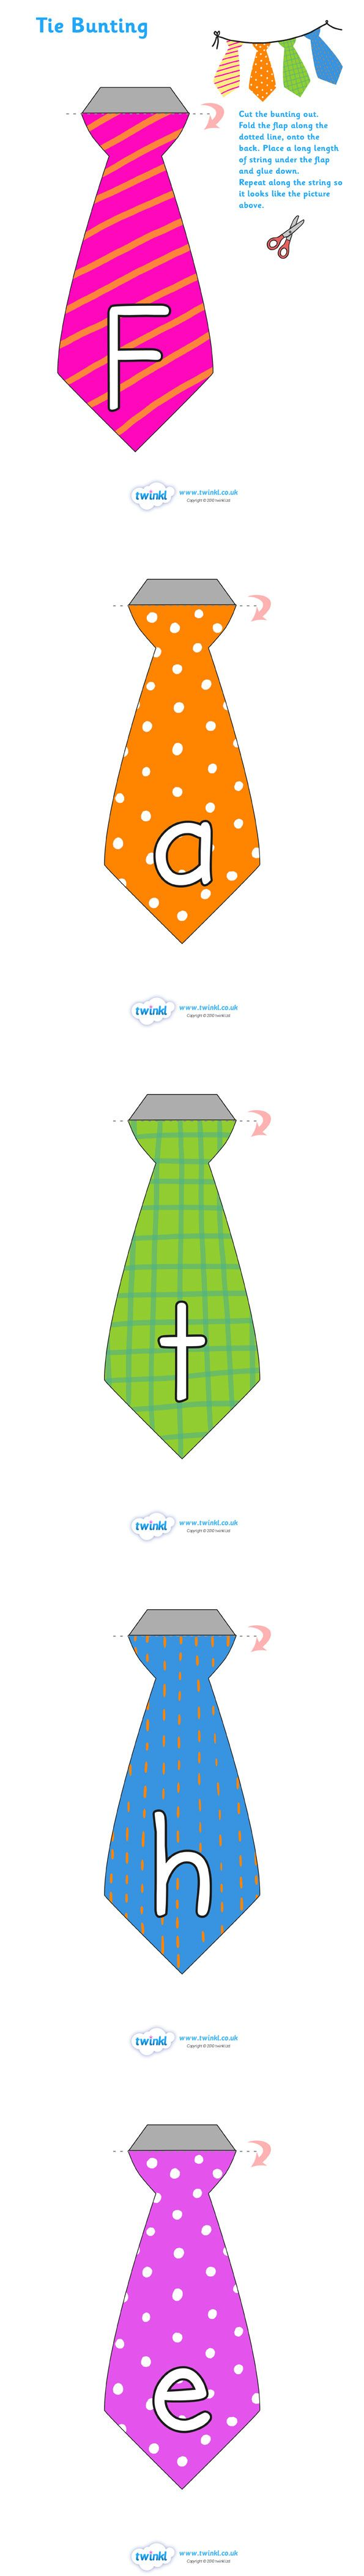 Tie Shaped Fathers Day Display Bunting   - Pop over to our site at www.twinkl.co.uk and check out our lovely Father's Day primary teaching resources! Father's day, Dad, Bunting, Display #Father'sDay #Father'sDay_Resources